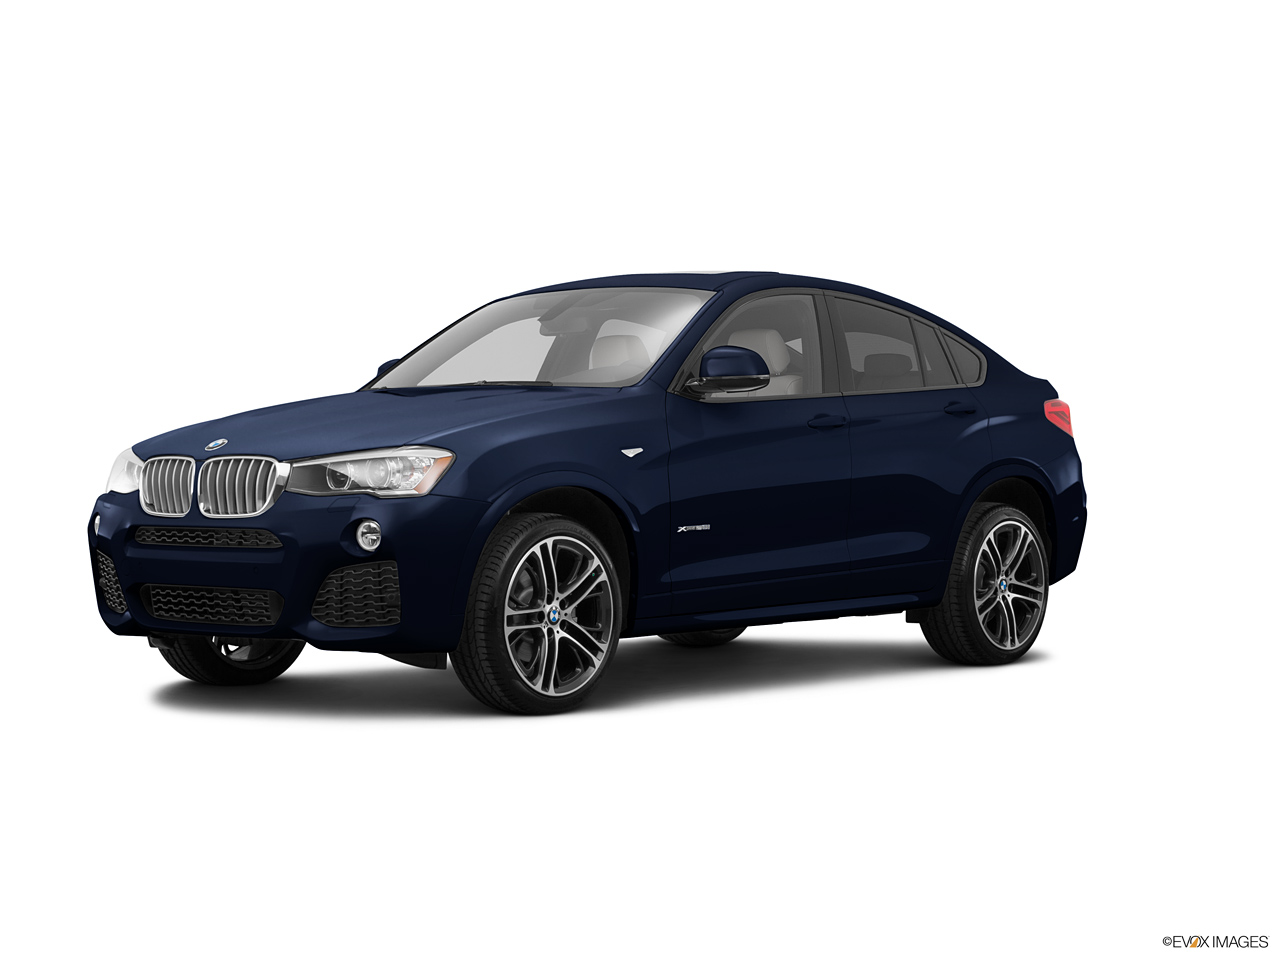 Bmw X4 2017 Xdrive 28i In Bahrain New Car Prices Specs